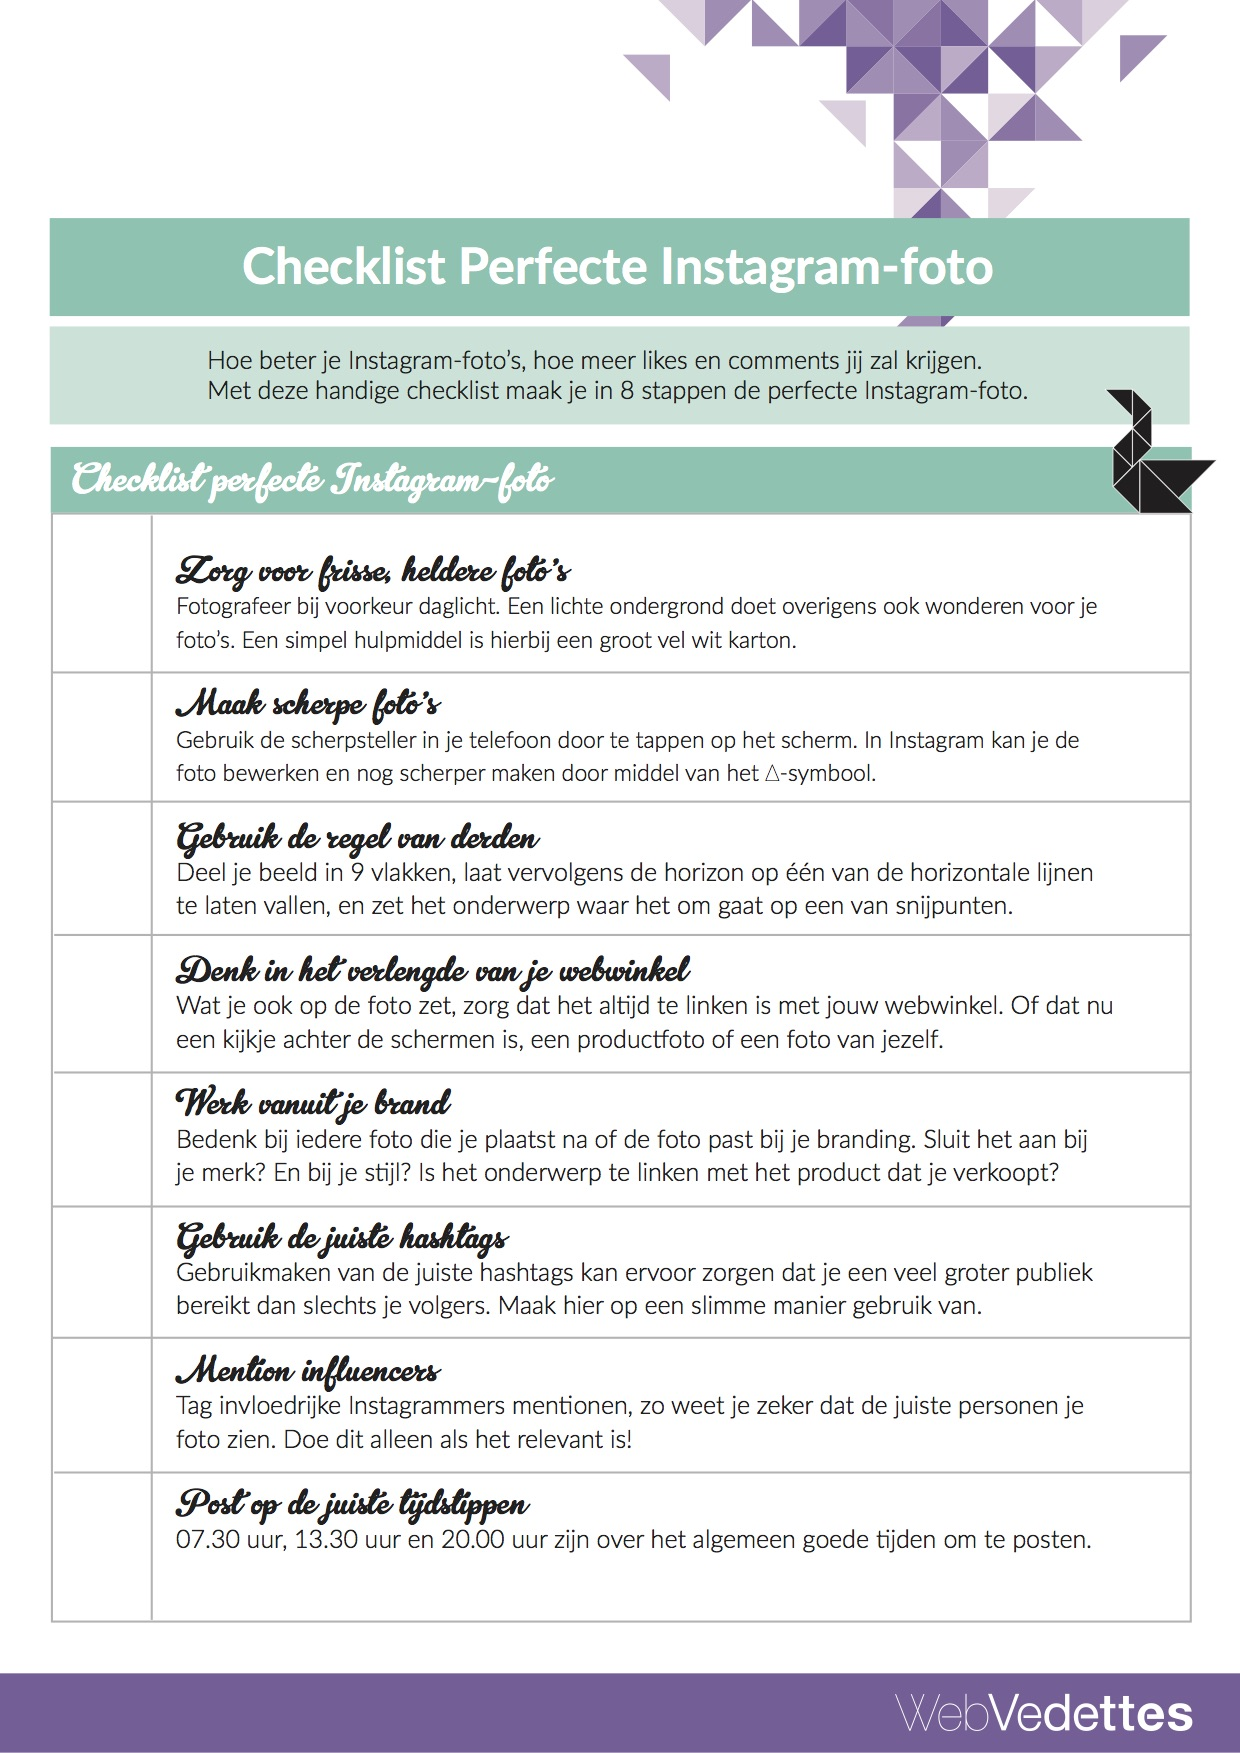 WerkBboek_Instagram_checklist_perfecteIGfoto